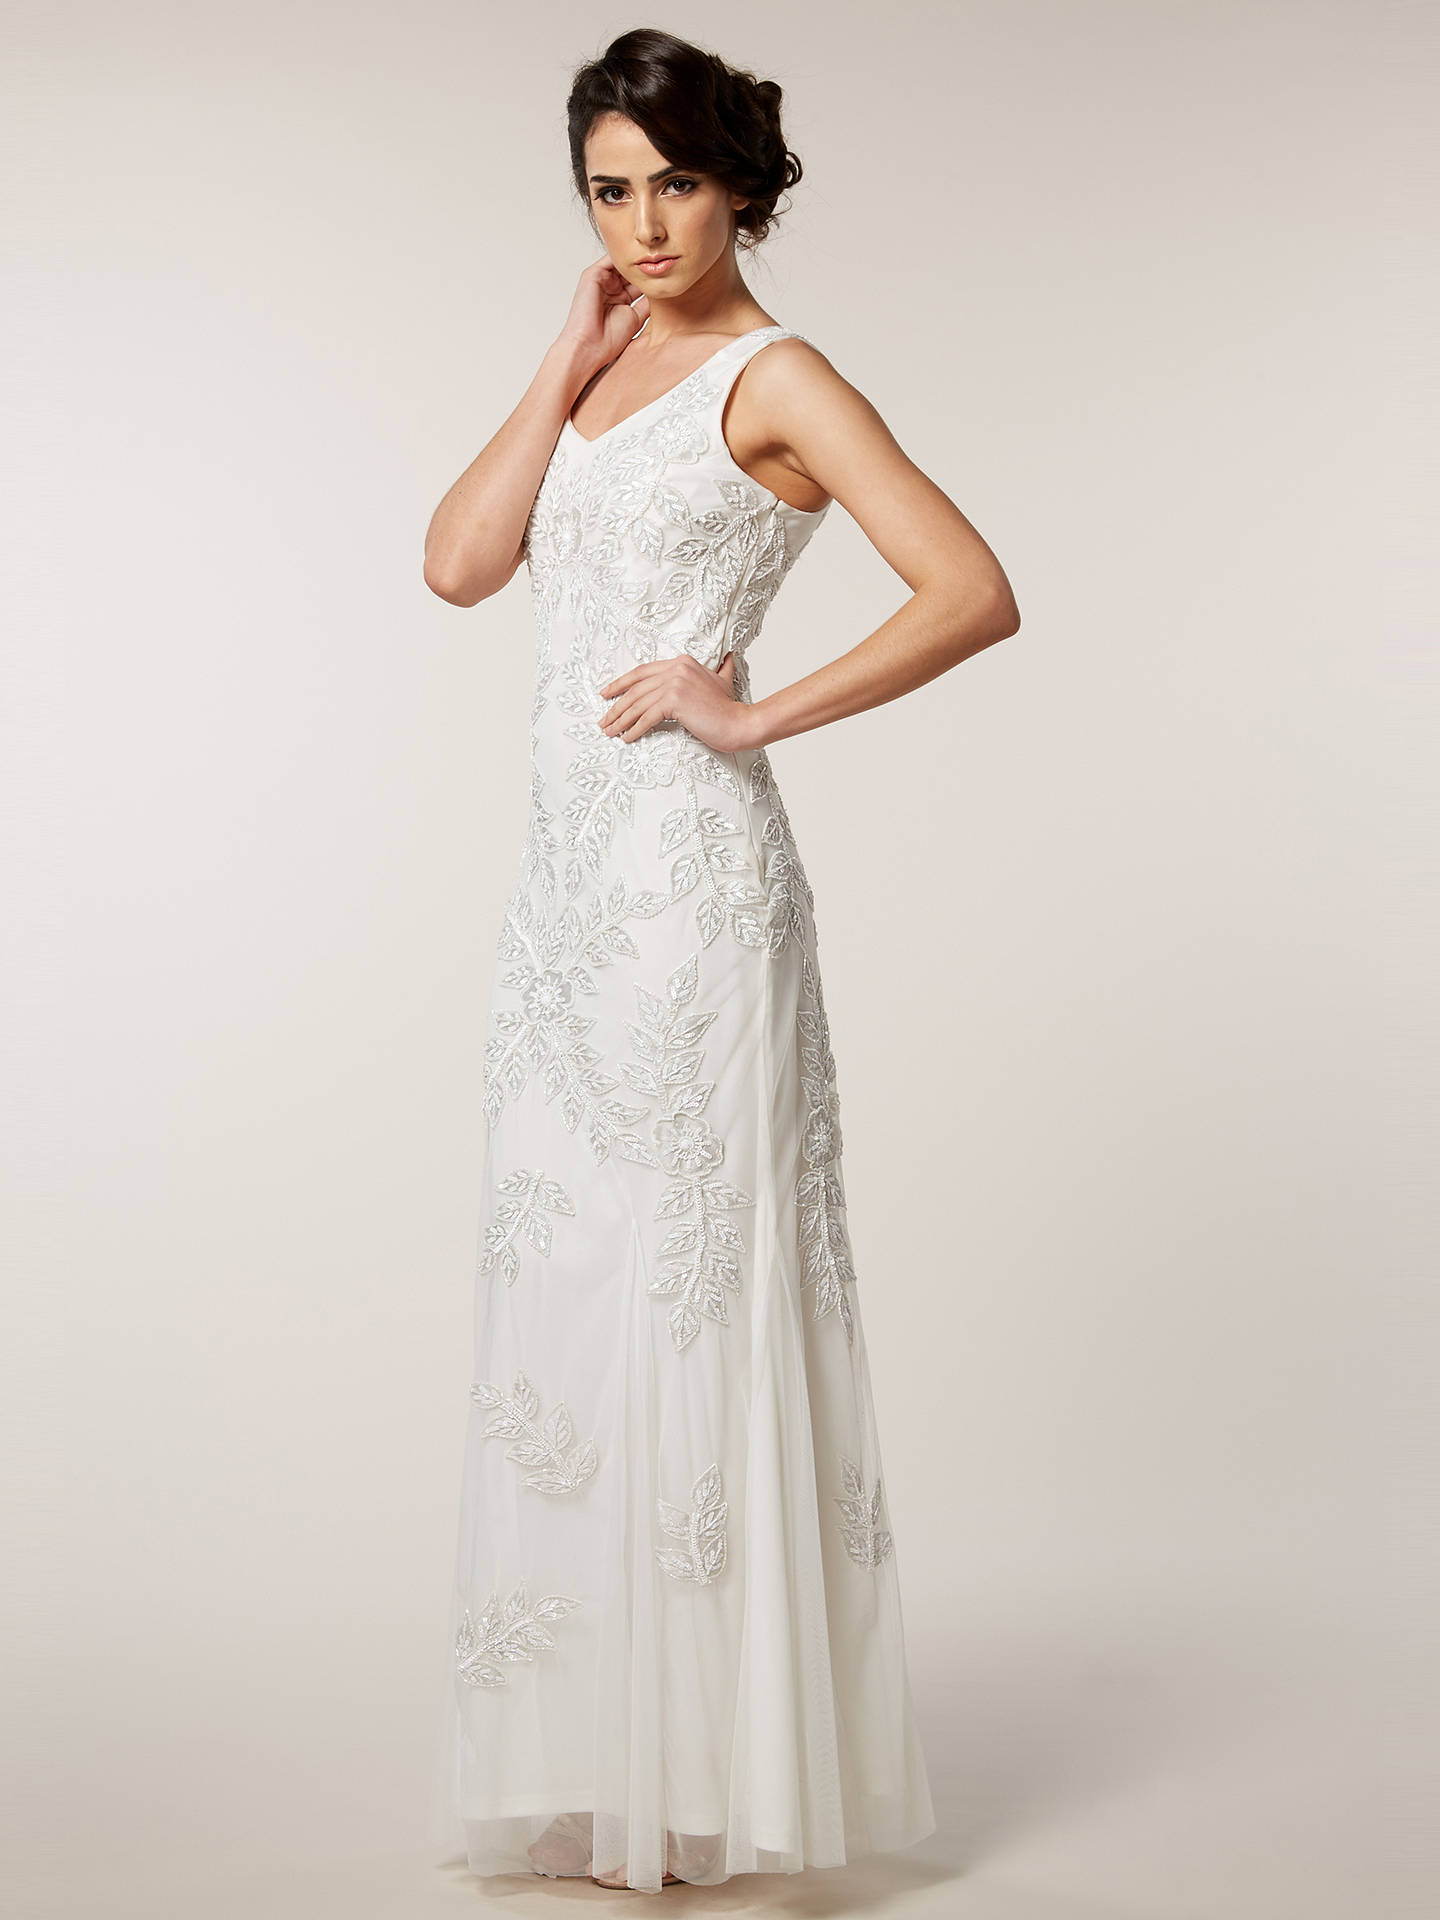 BuyRaishma Floral Embellished Gown, White, 8 Online at johnlewis.com